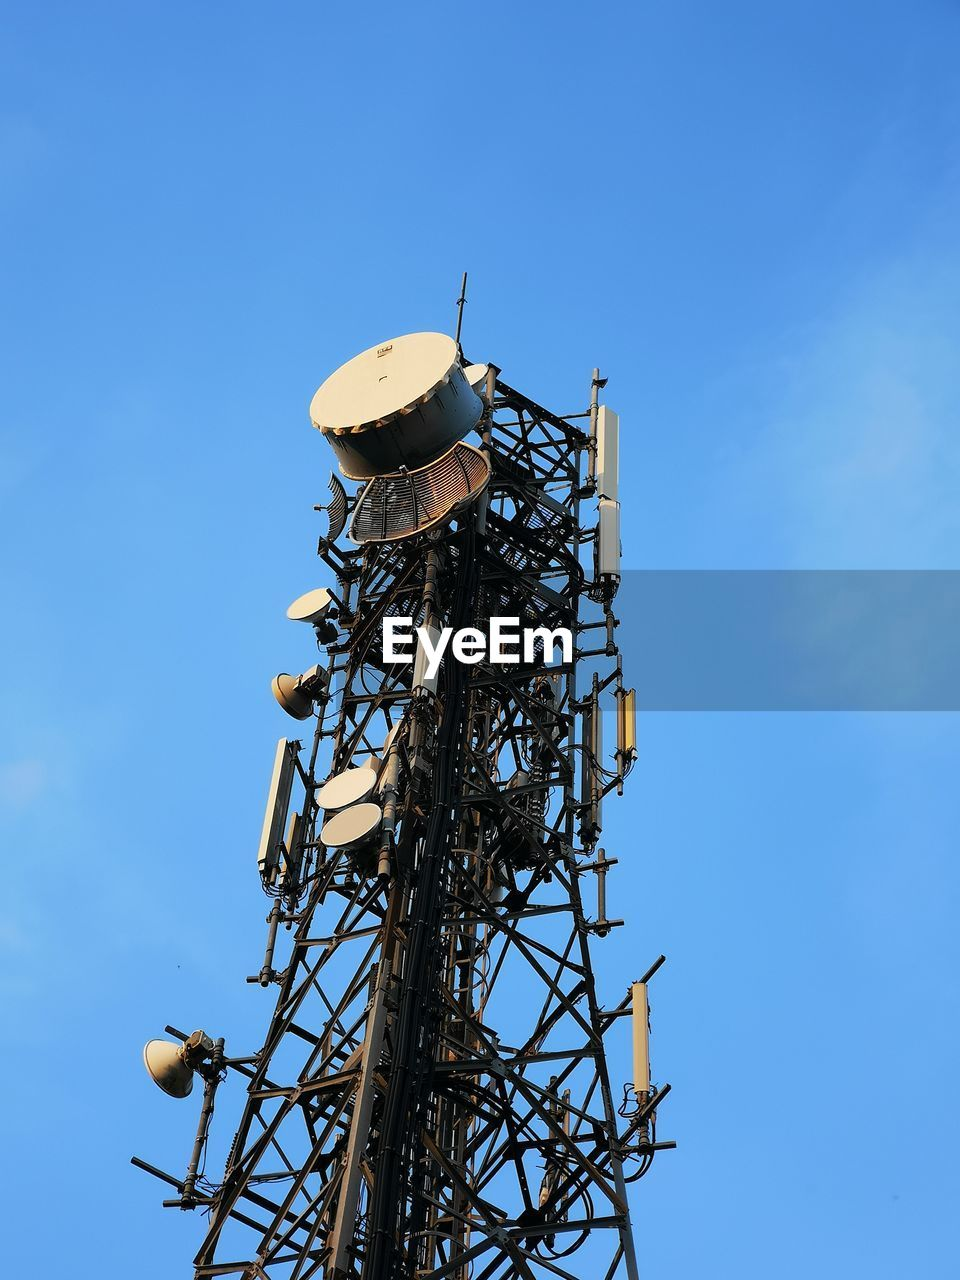 sky, low angle view, technology, tower, communication, global communications, no people, architecture, built structure, satellite, day, nature, connection, blue, antenna - aerial, tall - high, metal, satellite dish, broadcasting, wireless technology, outdoors, electrical equipment